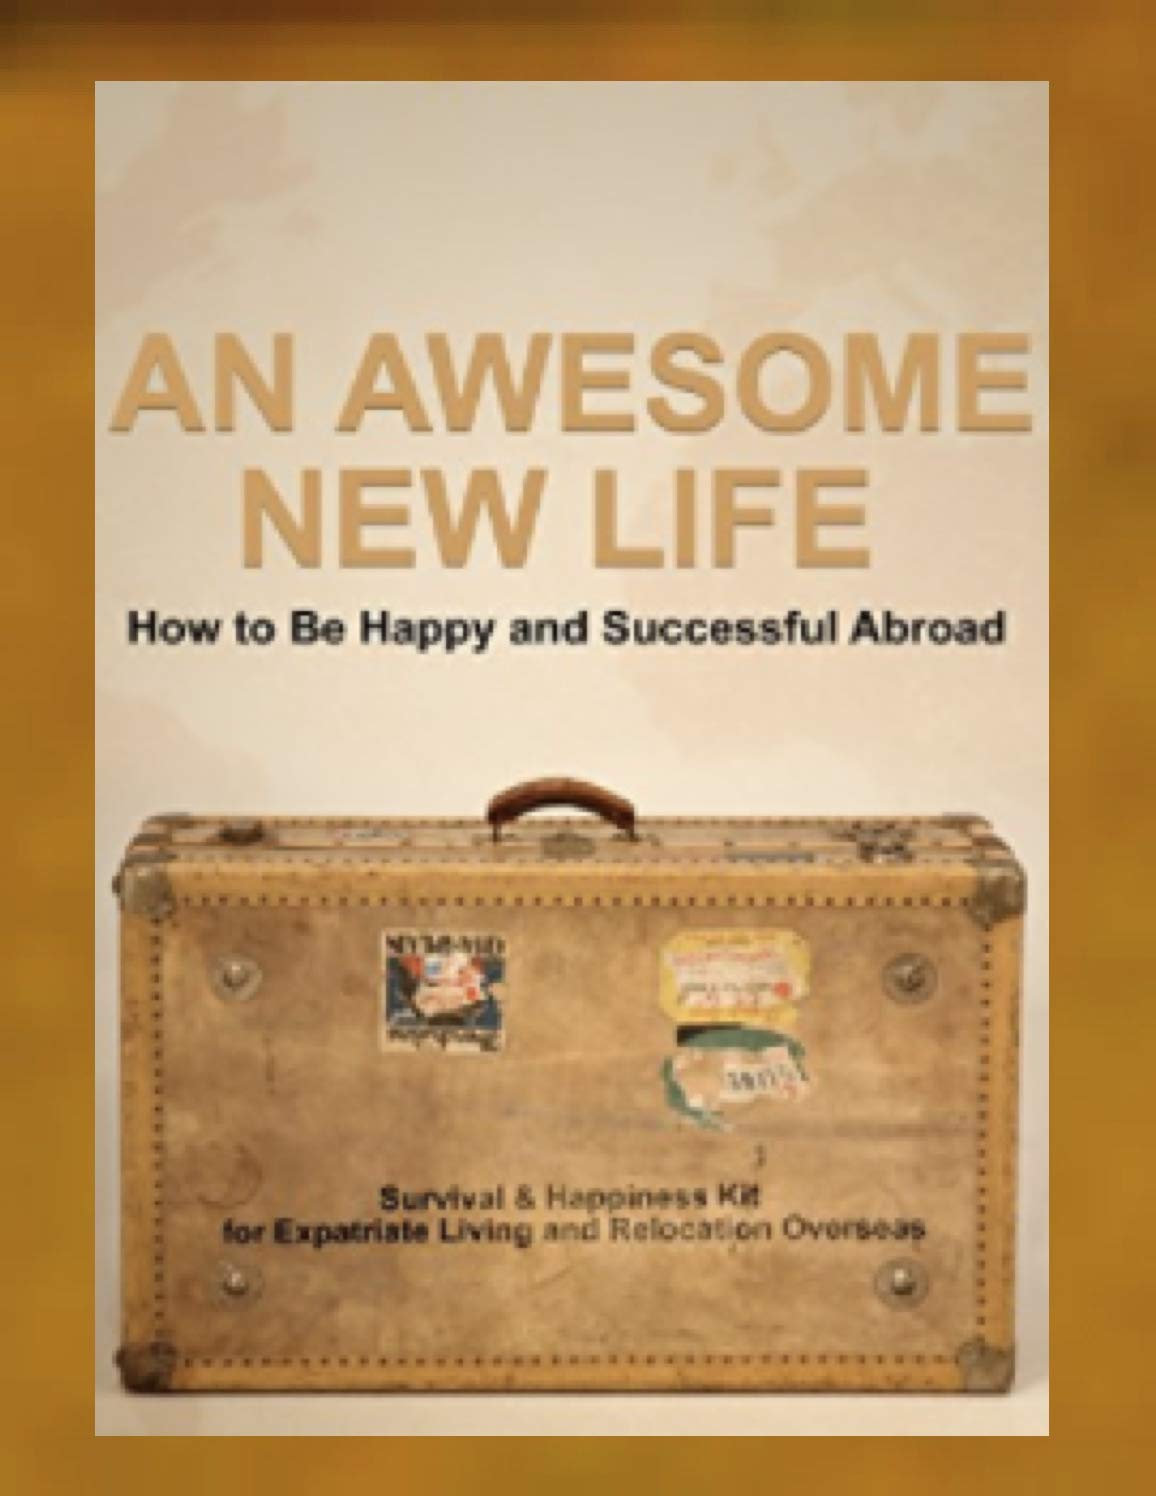 An Awesome New Life How to Be Happy and Successful Abroad: Your Survival and Happiness Kit for Expatriate Living and Relocation Overseas